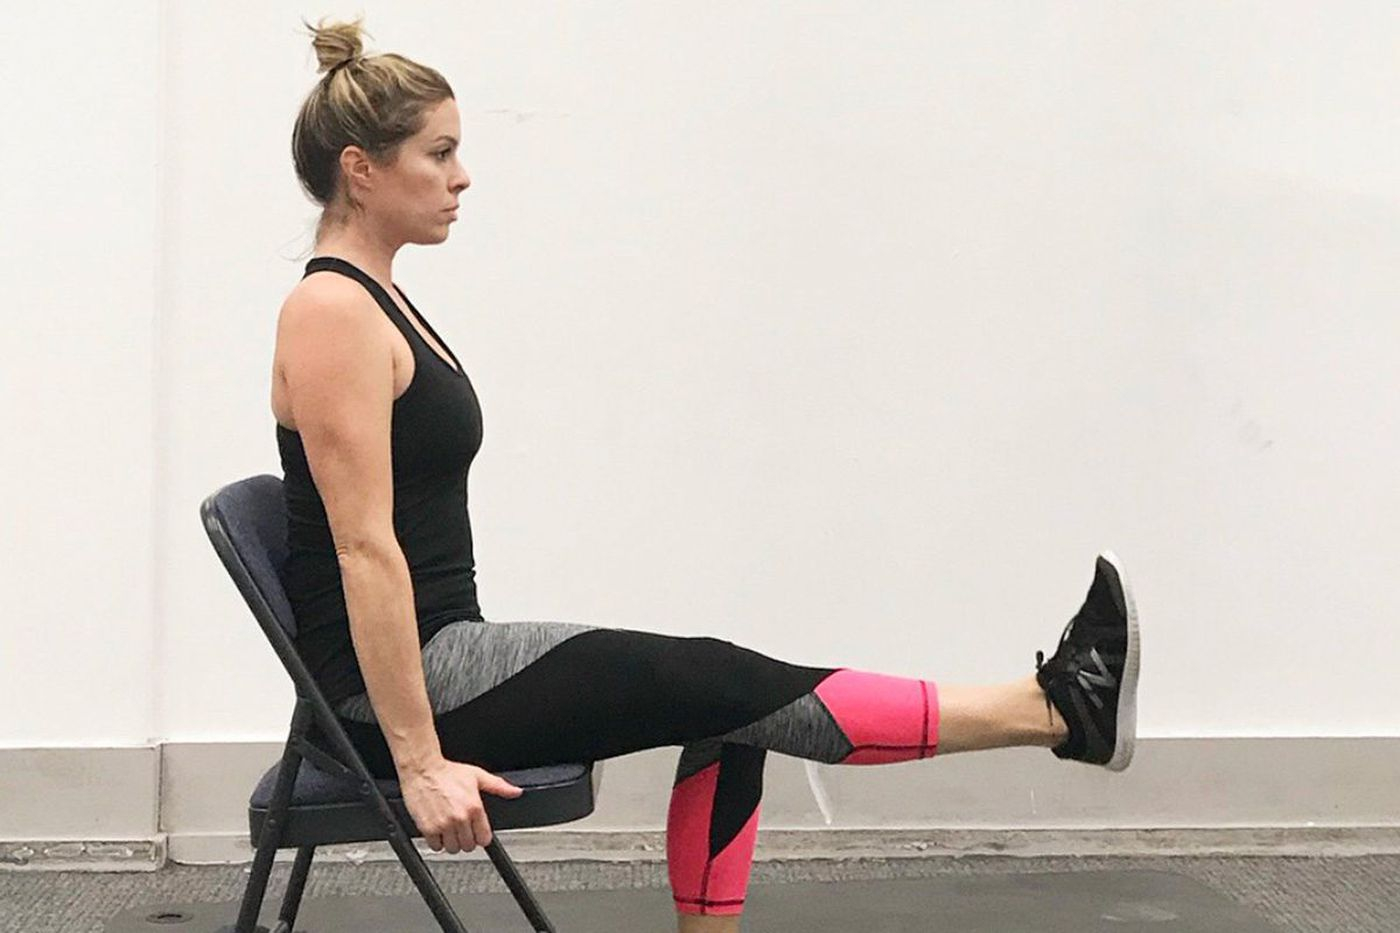 5 easy exercises you can do from your chair